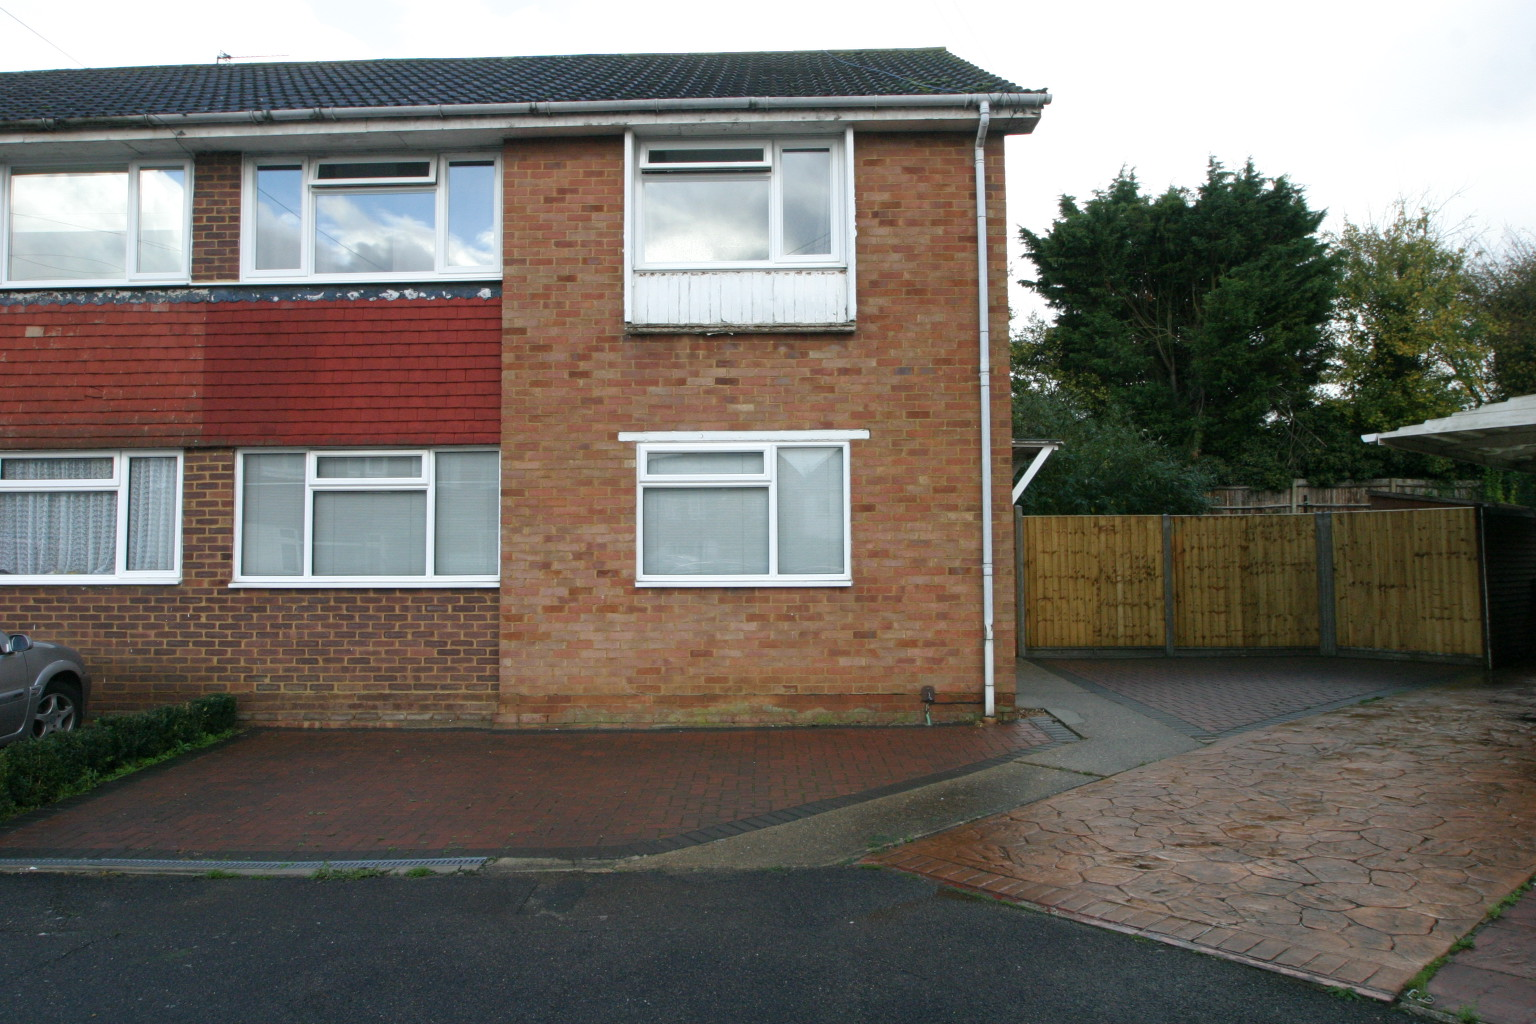 2 Bedroom Ground Floor Maisonette, Ashford